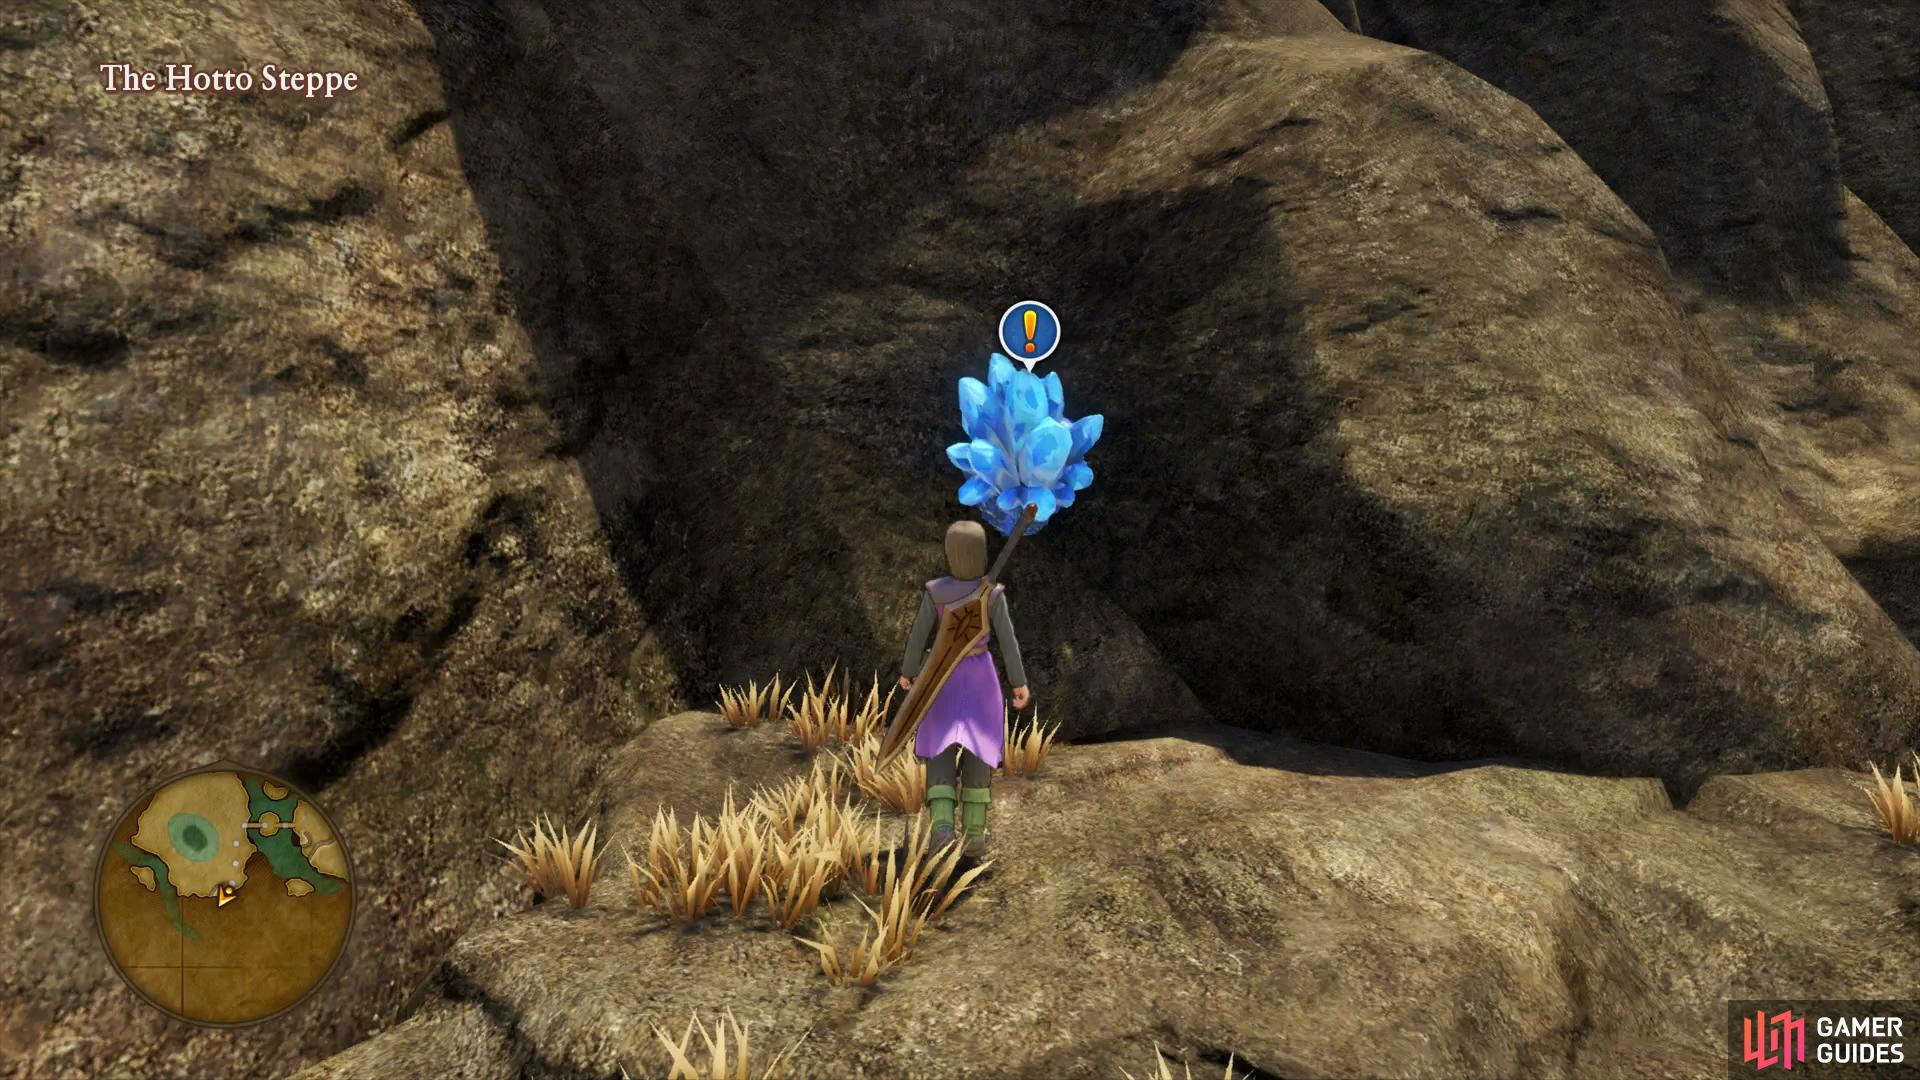 Search southwest of Hotto to find a Crystal containing the Iron Ore needed for Quest 06